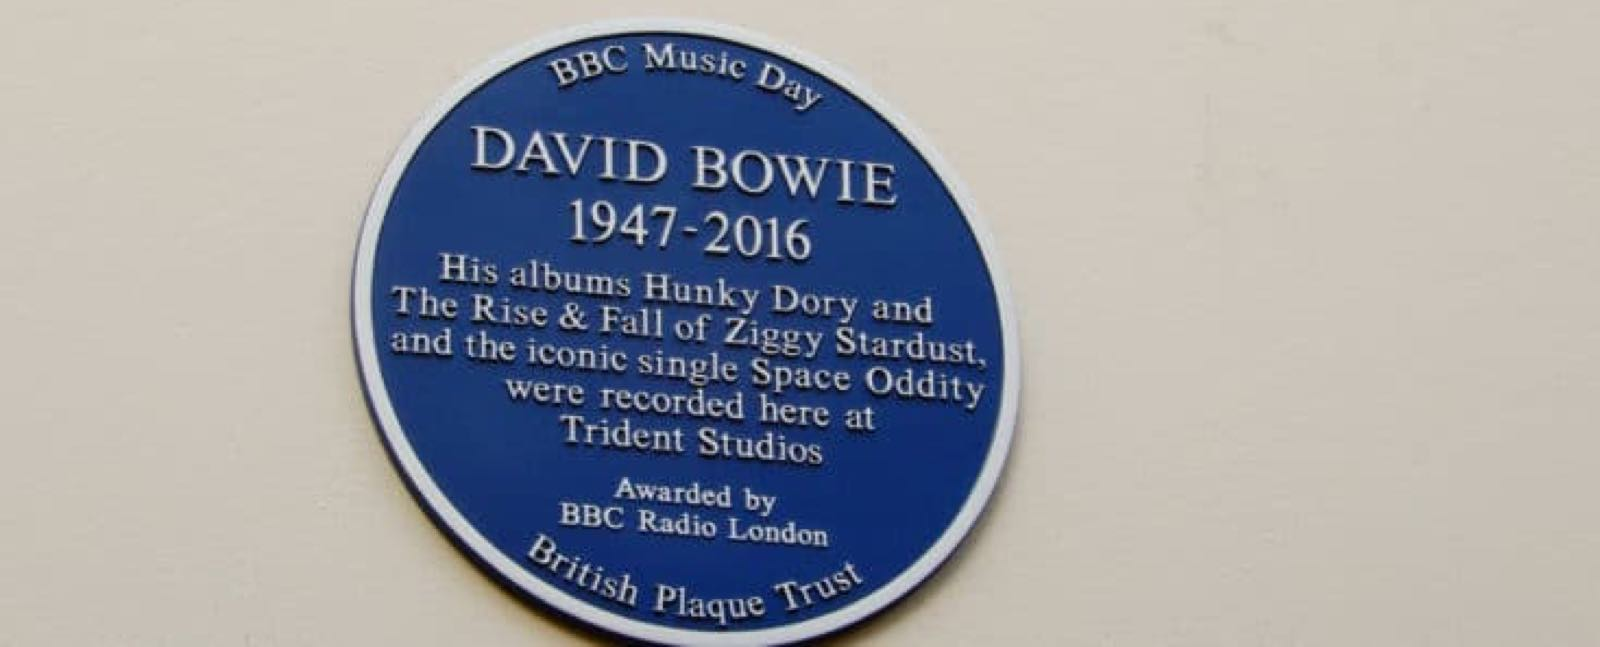 David Bowie recorded here at Trident Studios in London